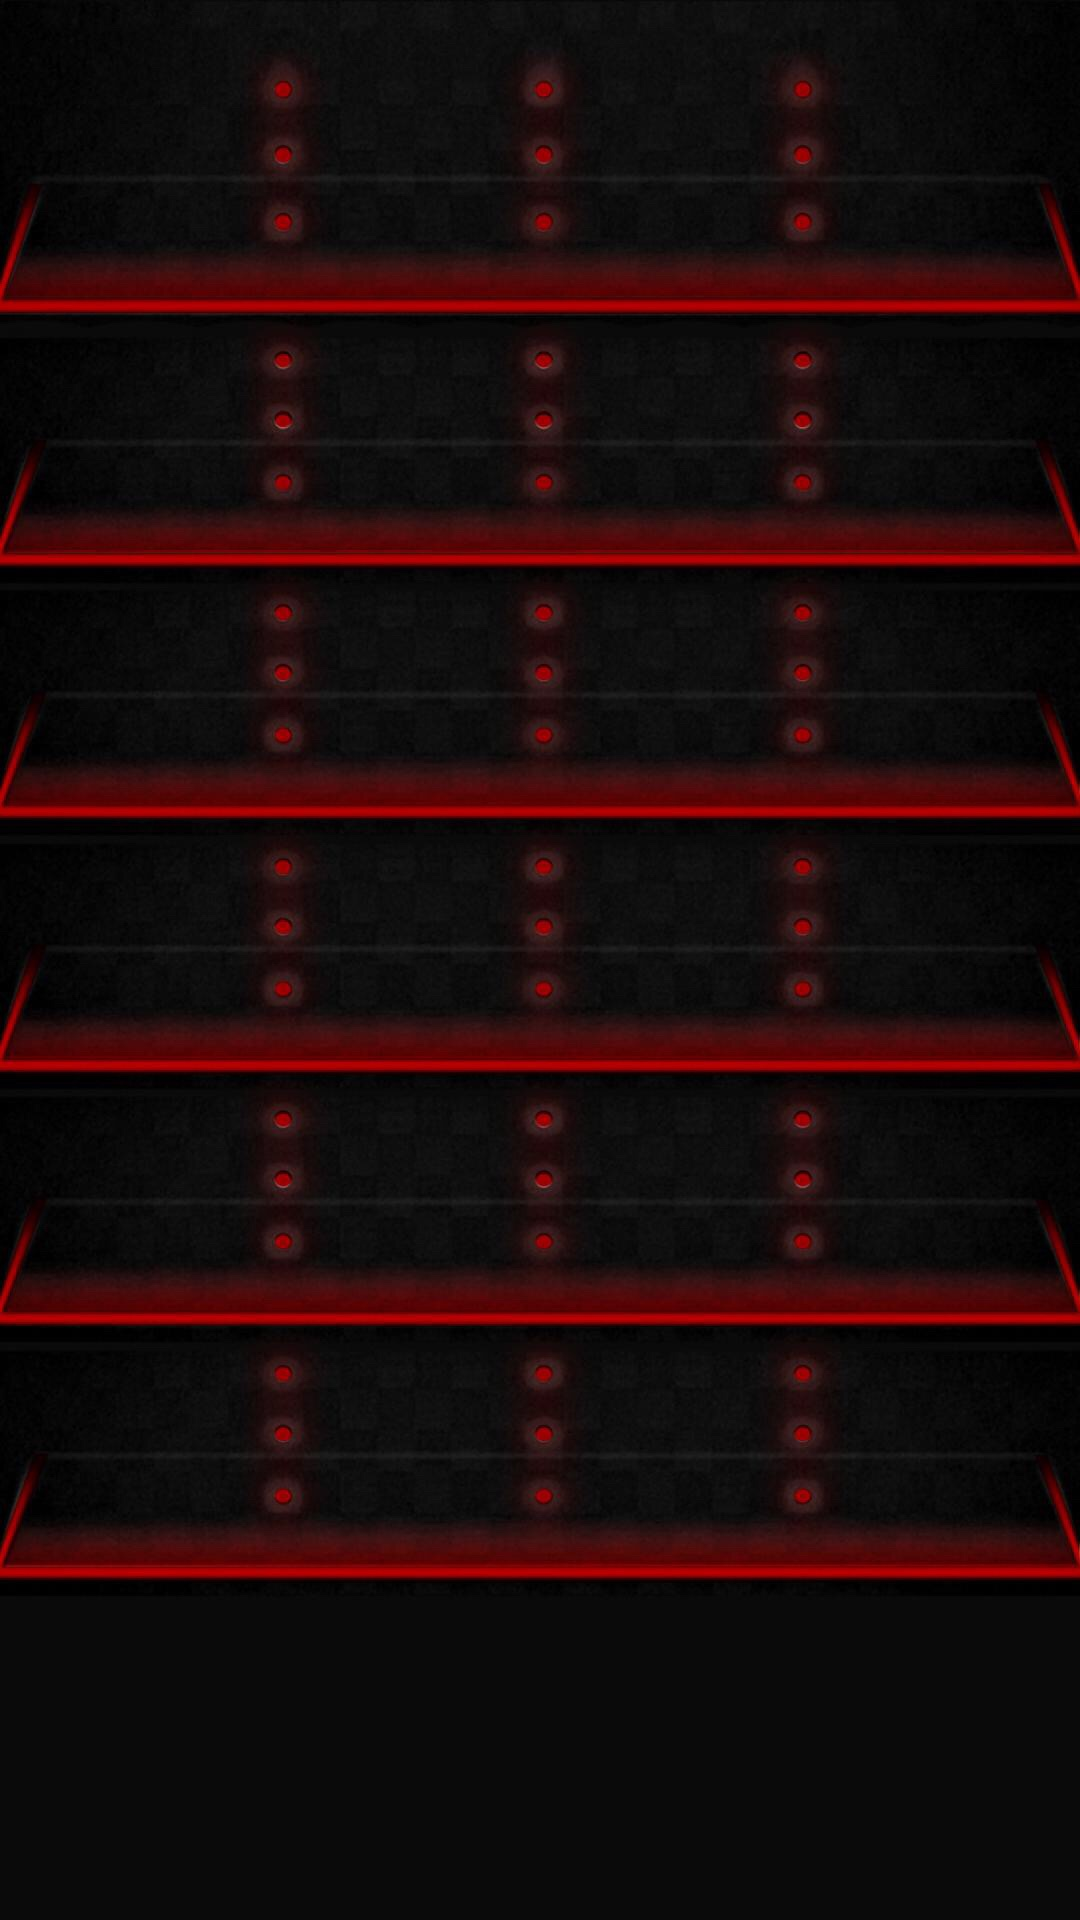 IPhone 6/6s/7/8 Plus Wallpaper Request Thread   Page 38   IPhone, IPad,  IPod Forums At IMore.com